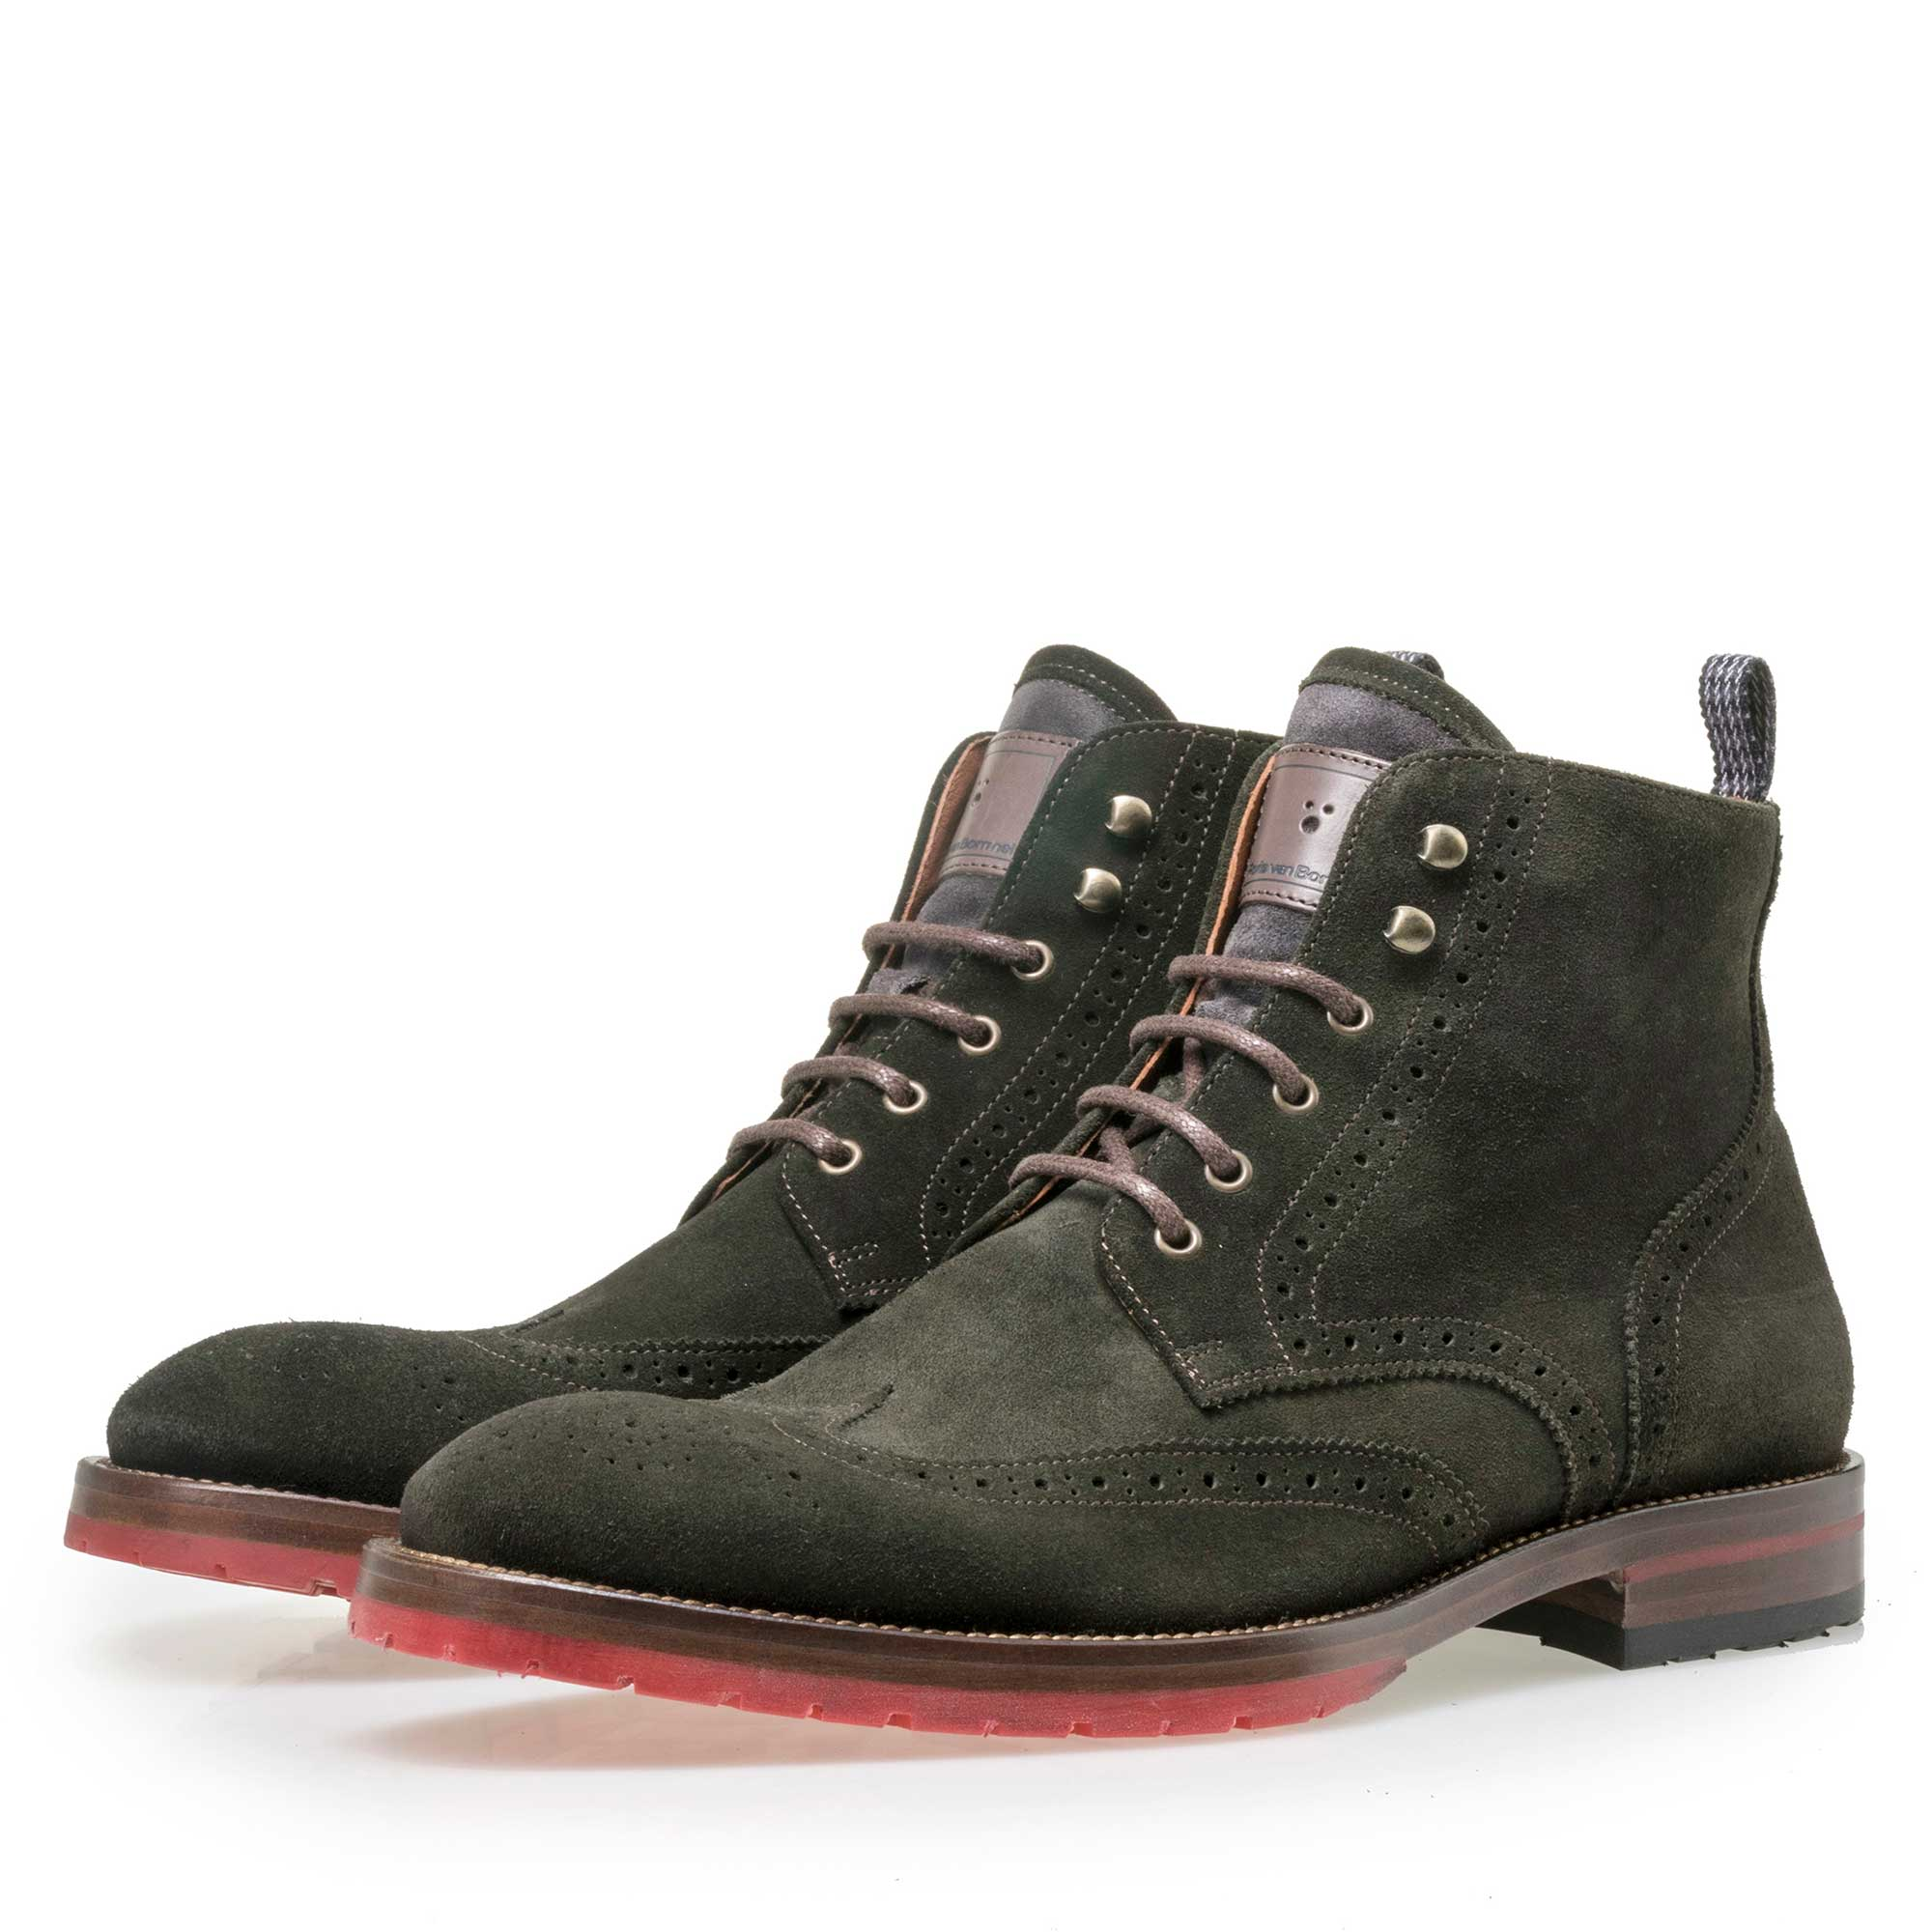 Men's olive green brogue suede leather lace boot 1097406